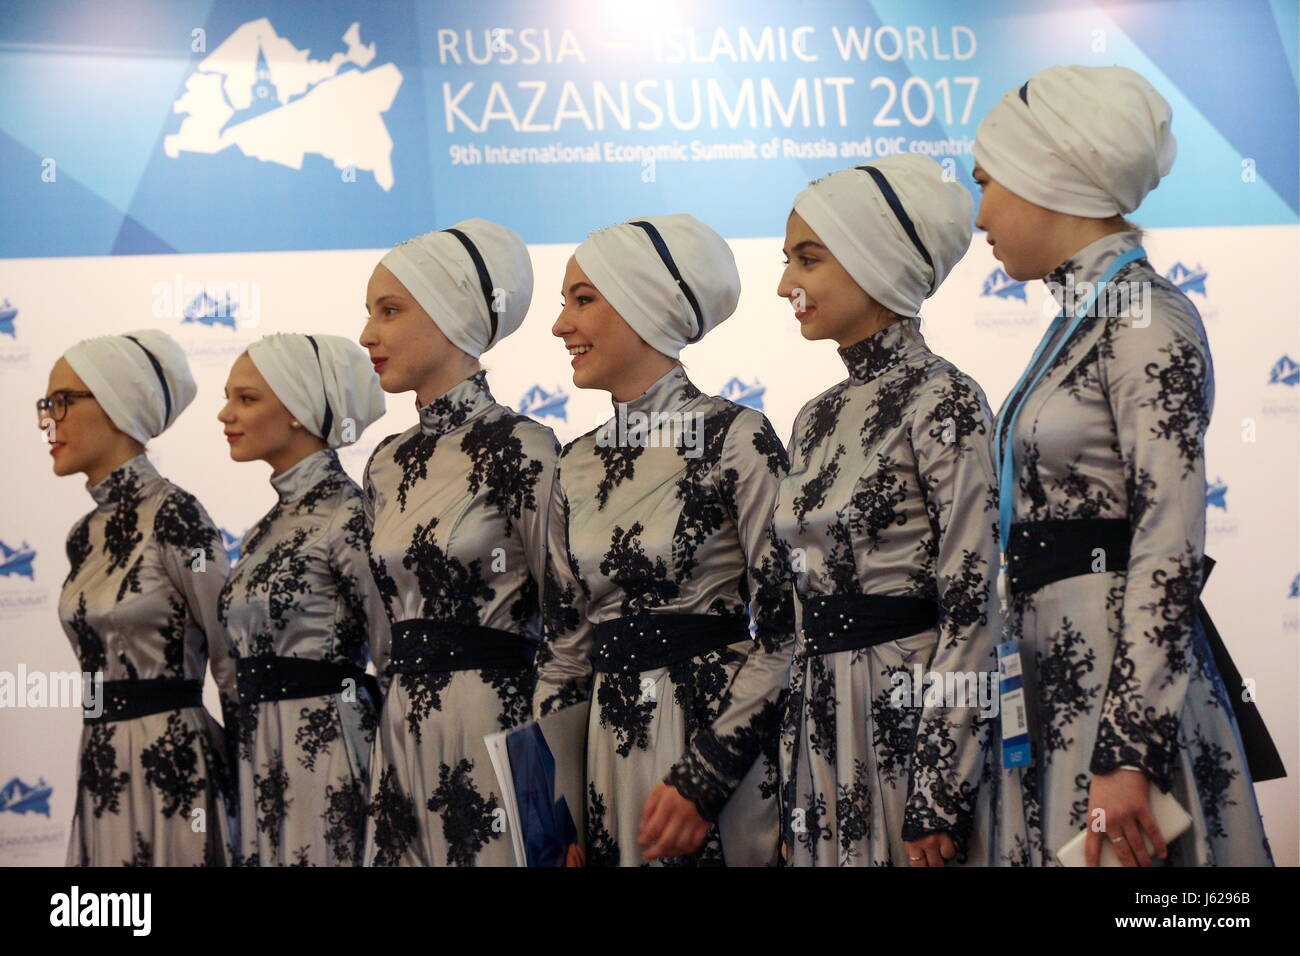 """Kazan, Russia. 18th May, 2017. Participants in the 9th International Economic Summit titled """"Russia — Islamic World: - Stock Image"""